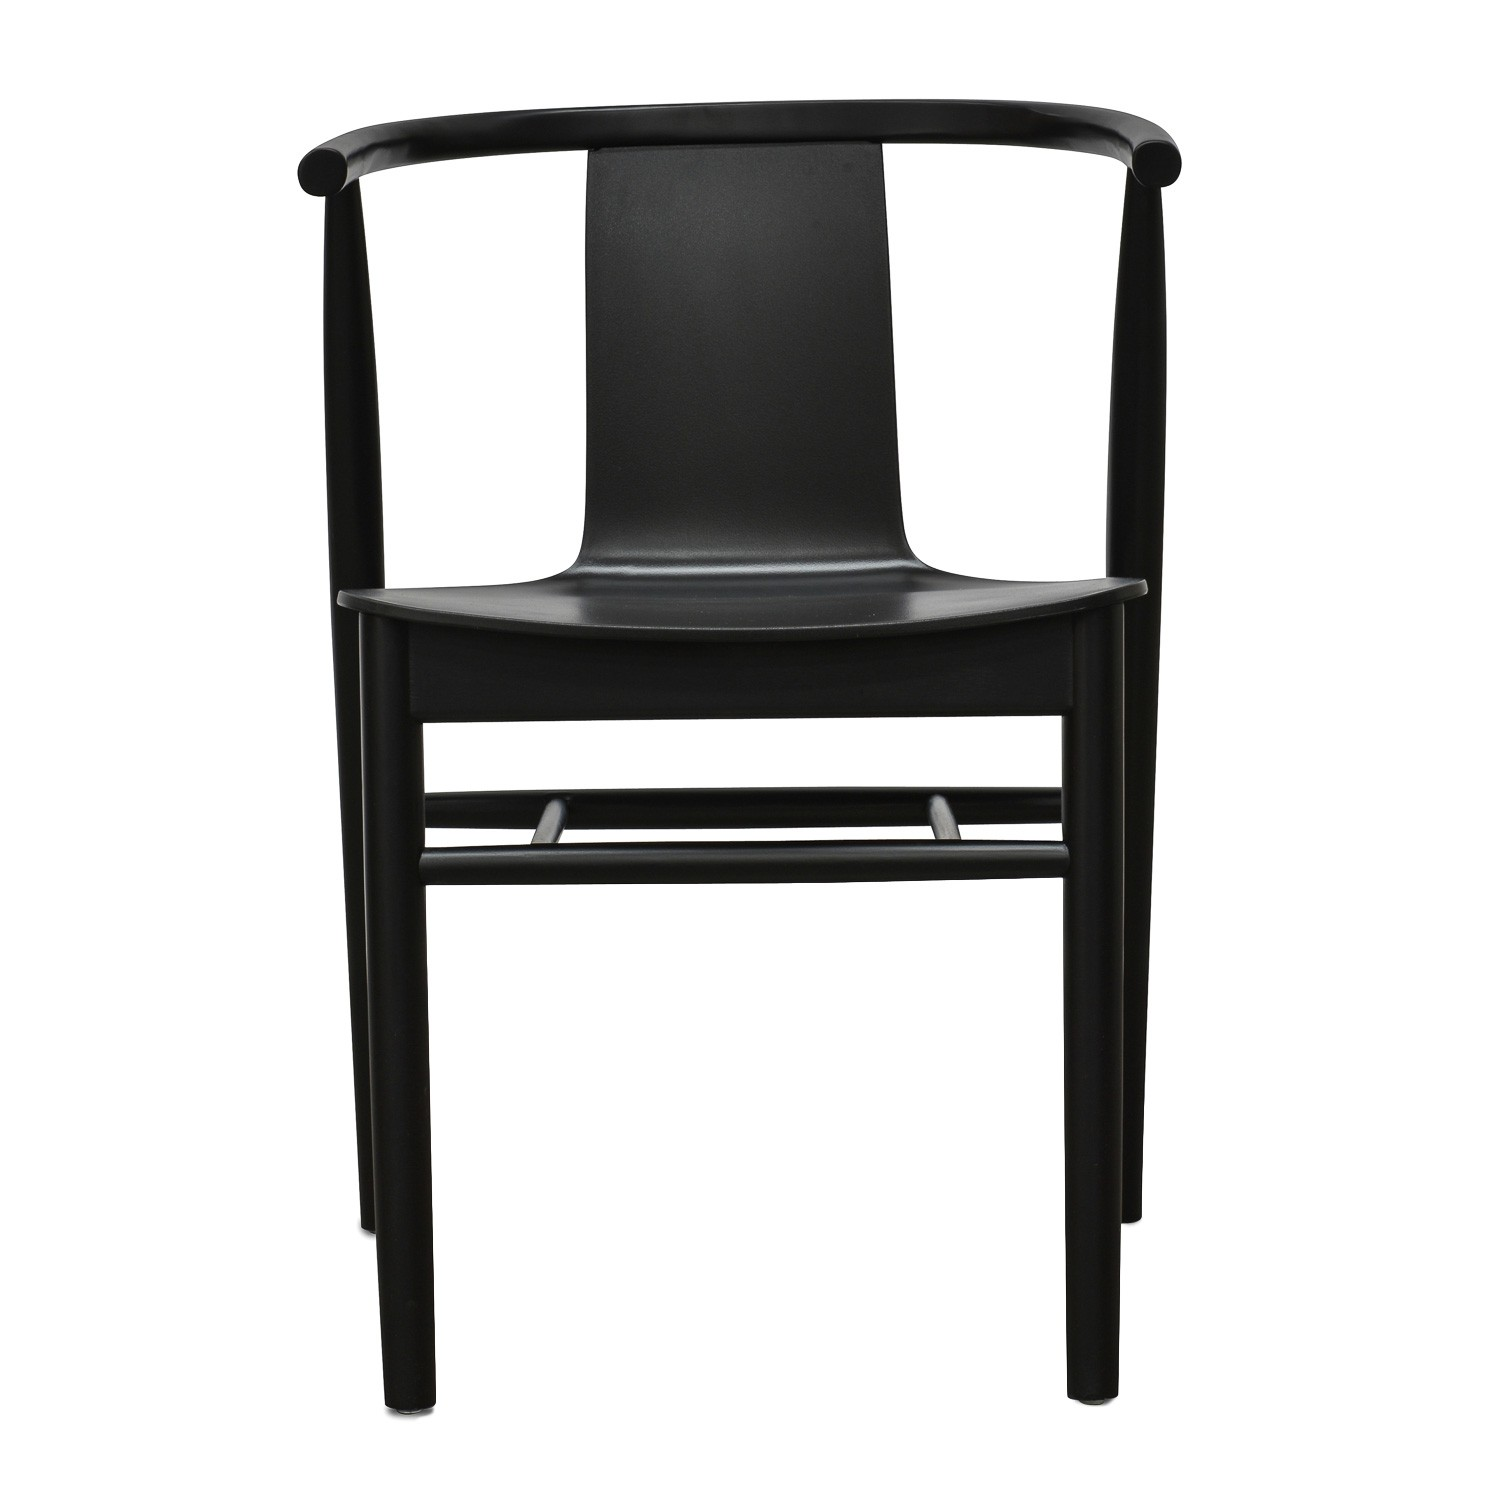 Haye Wooden Dining Chair, Black